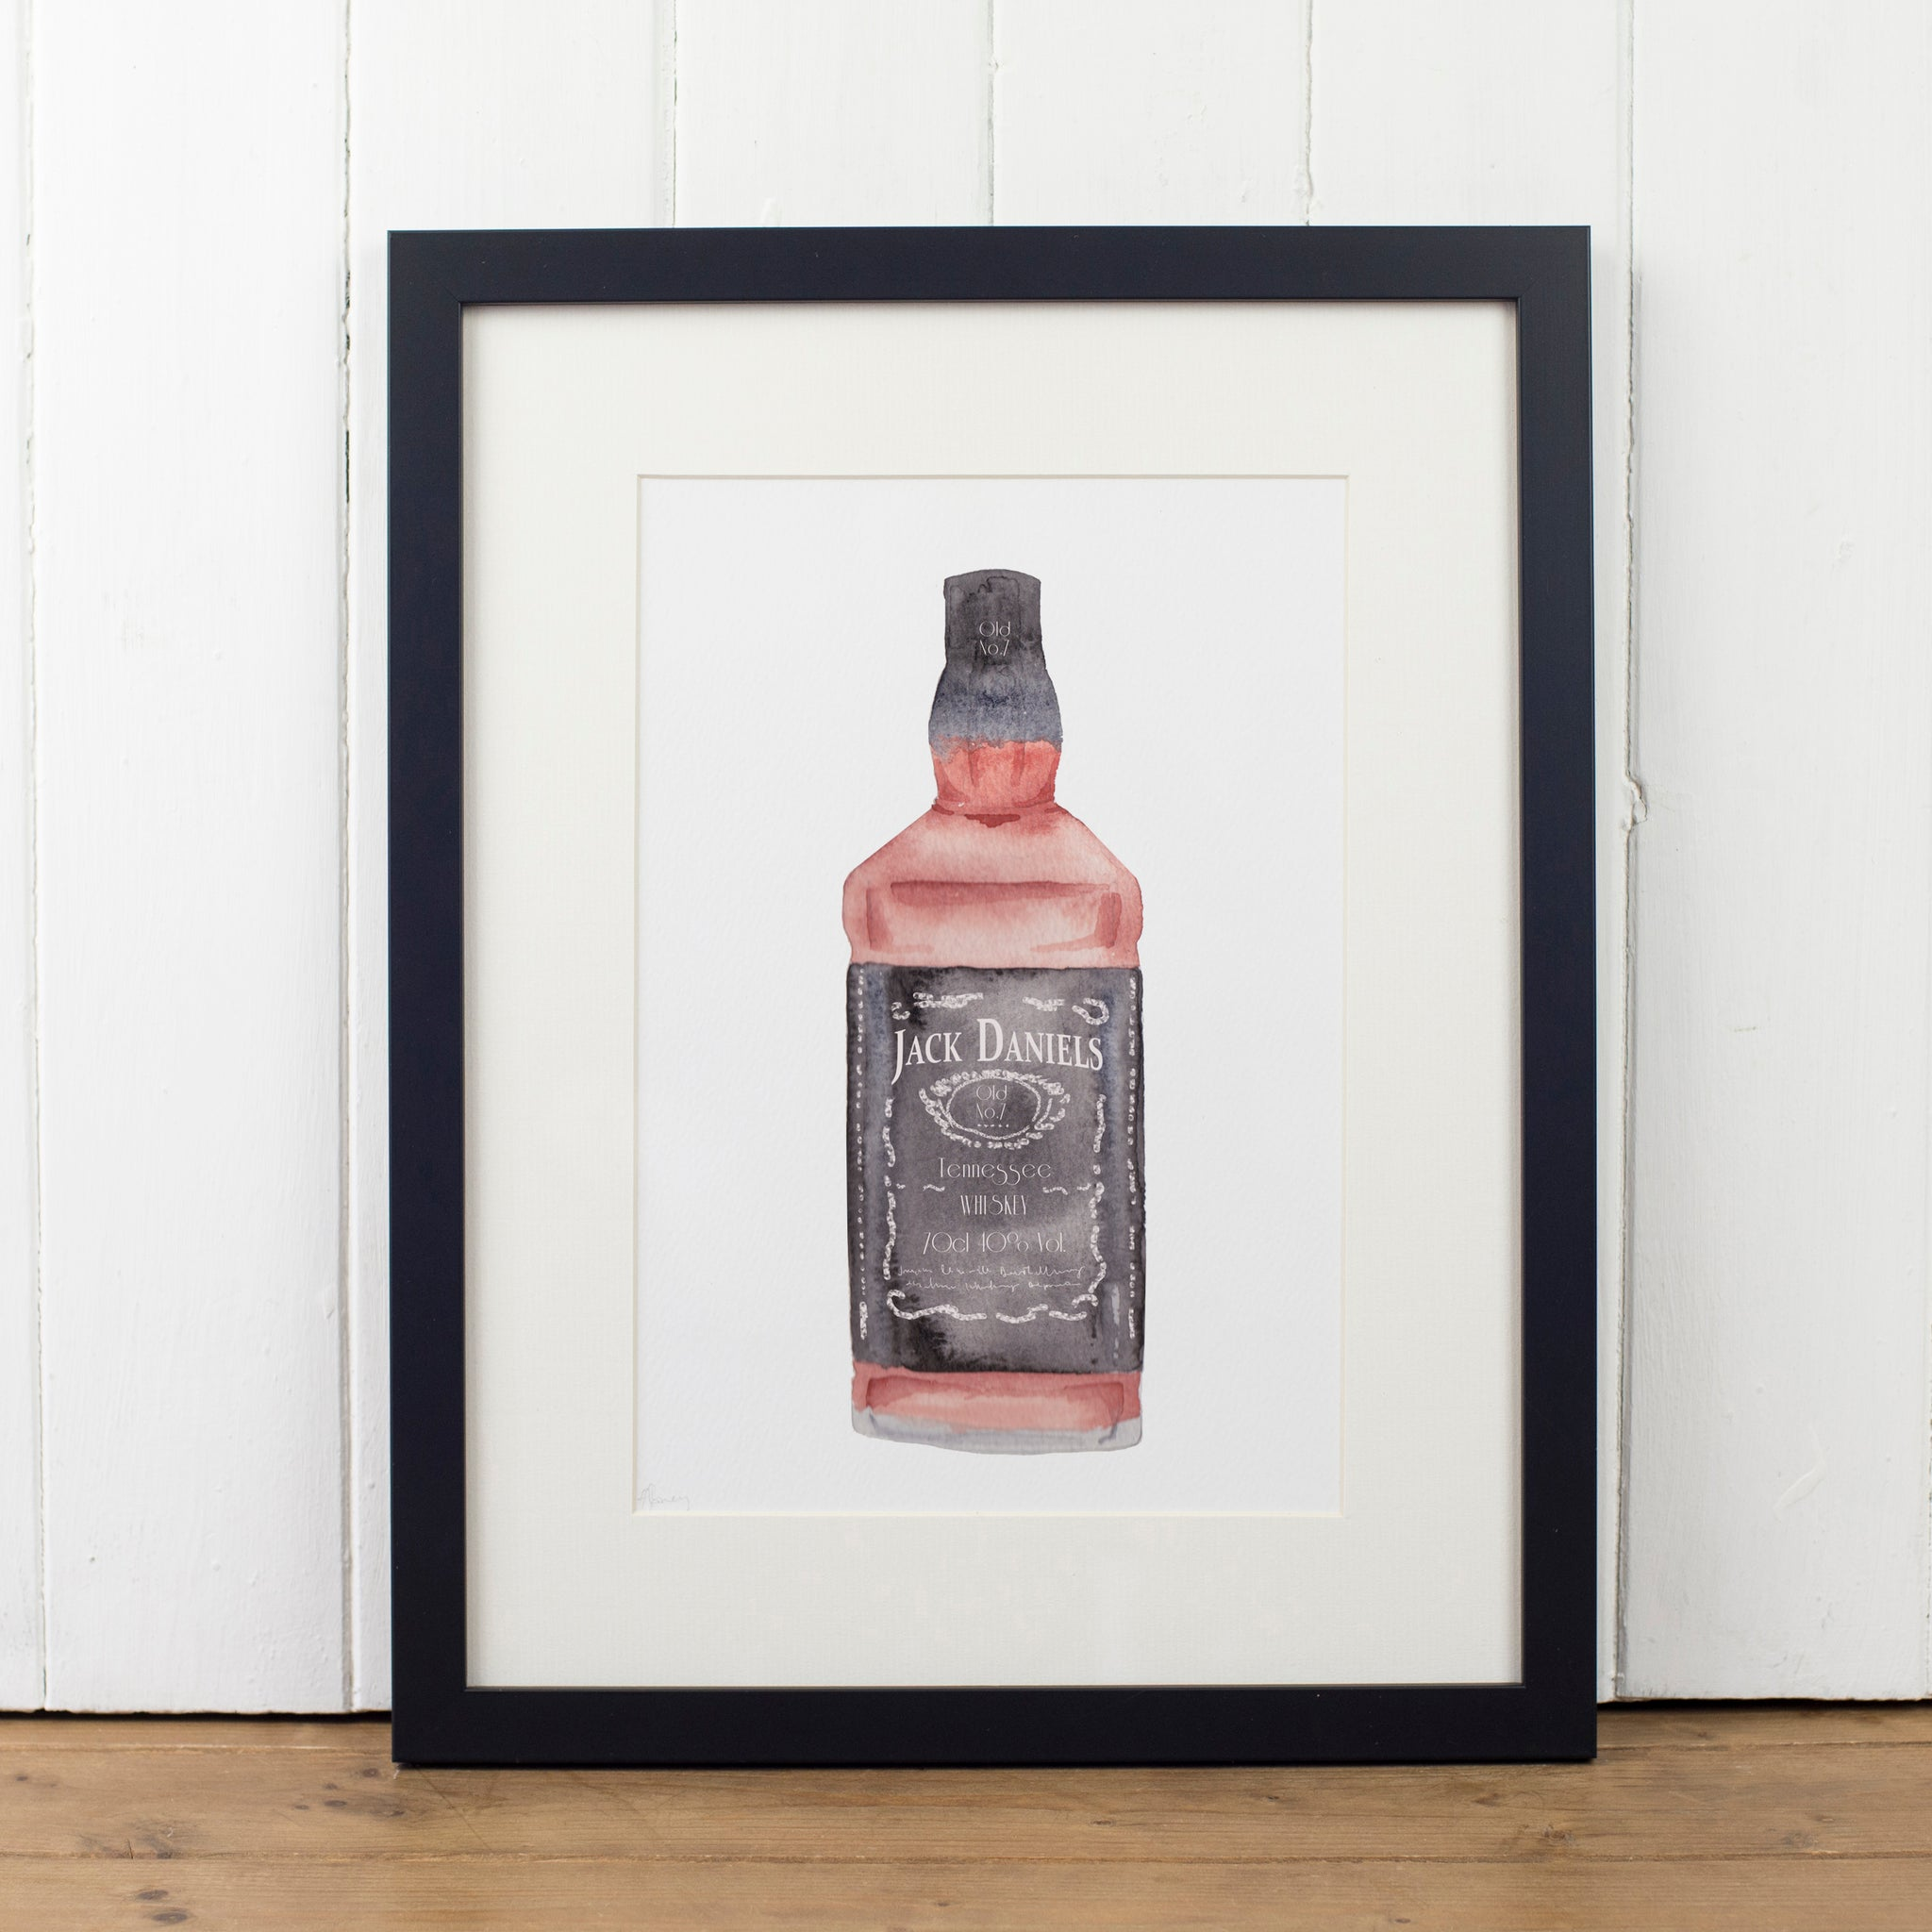 Jack Daniels Whisky Bottle Art Print - Yellowstone Art Boutique